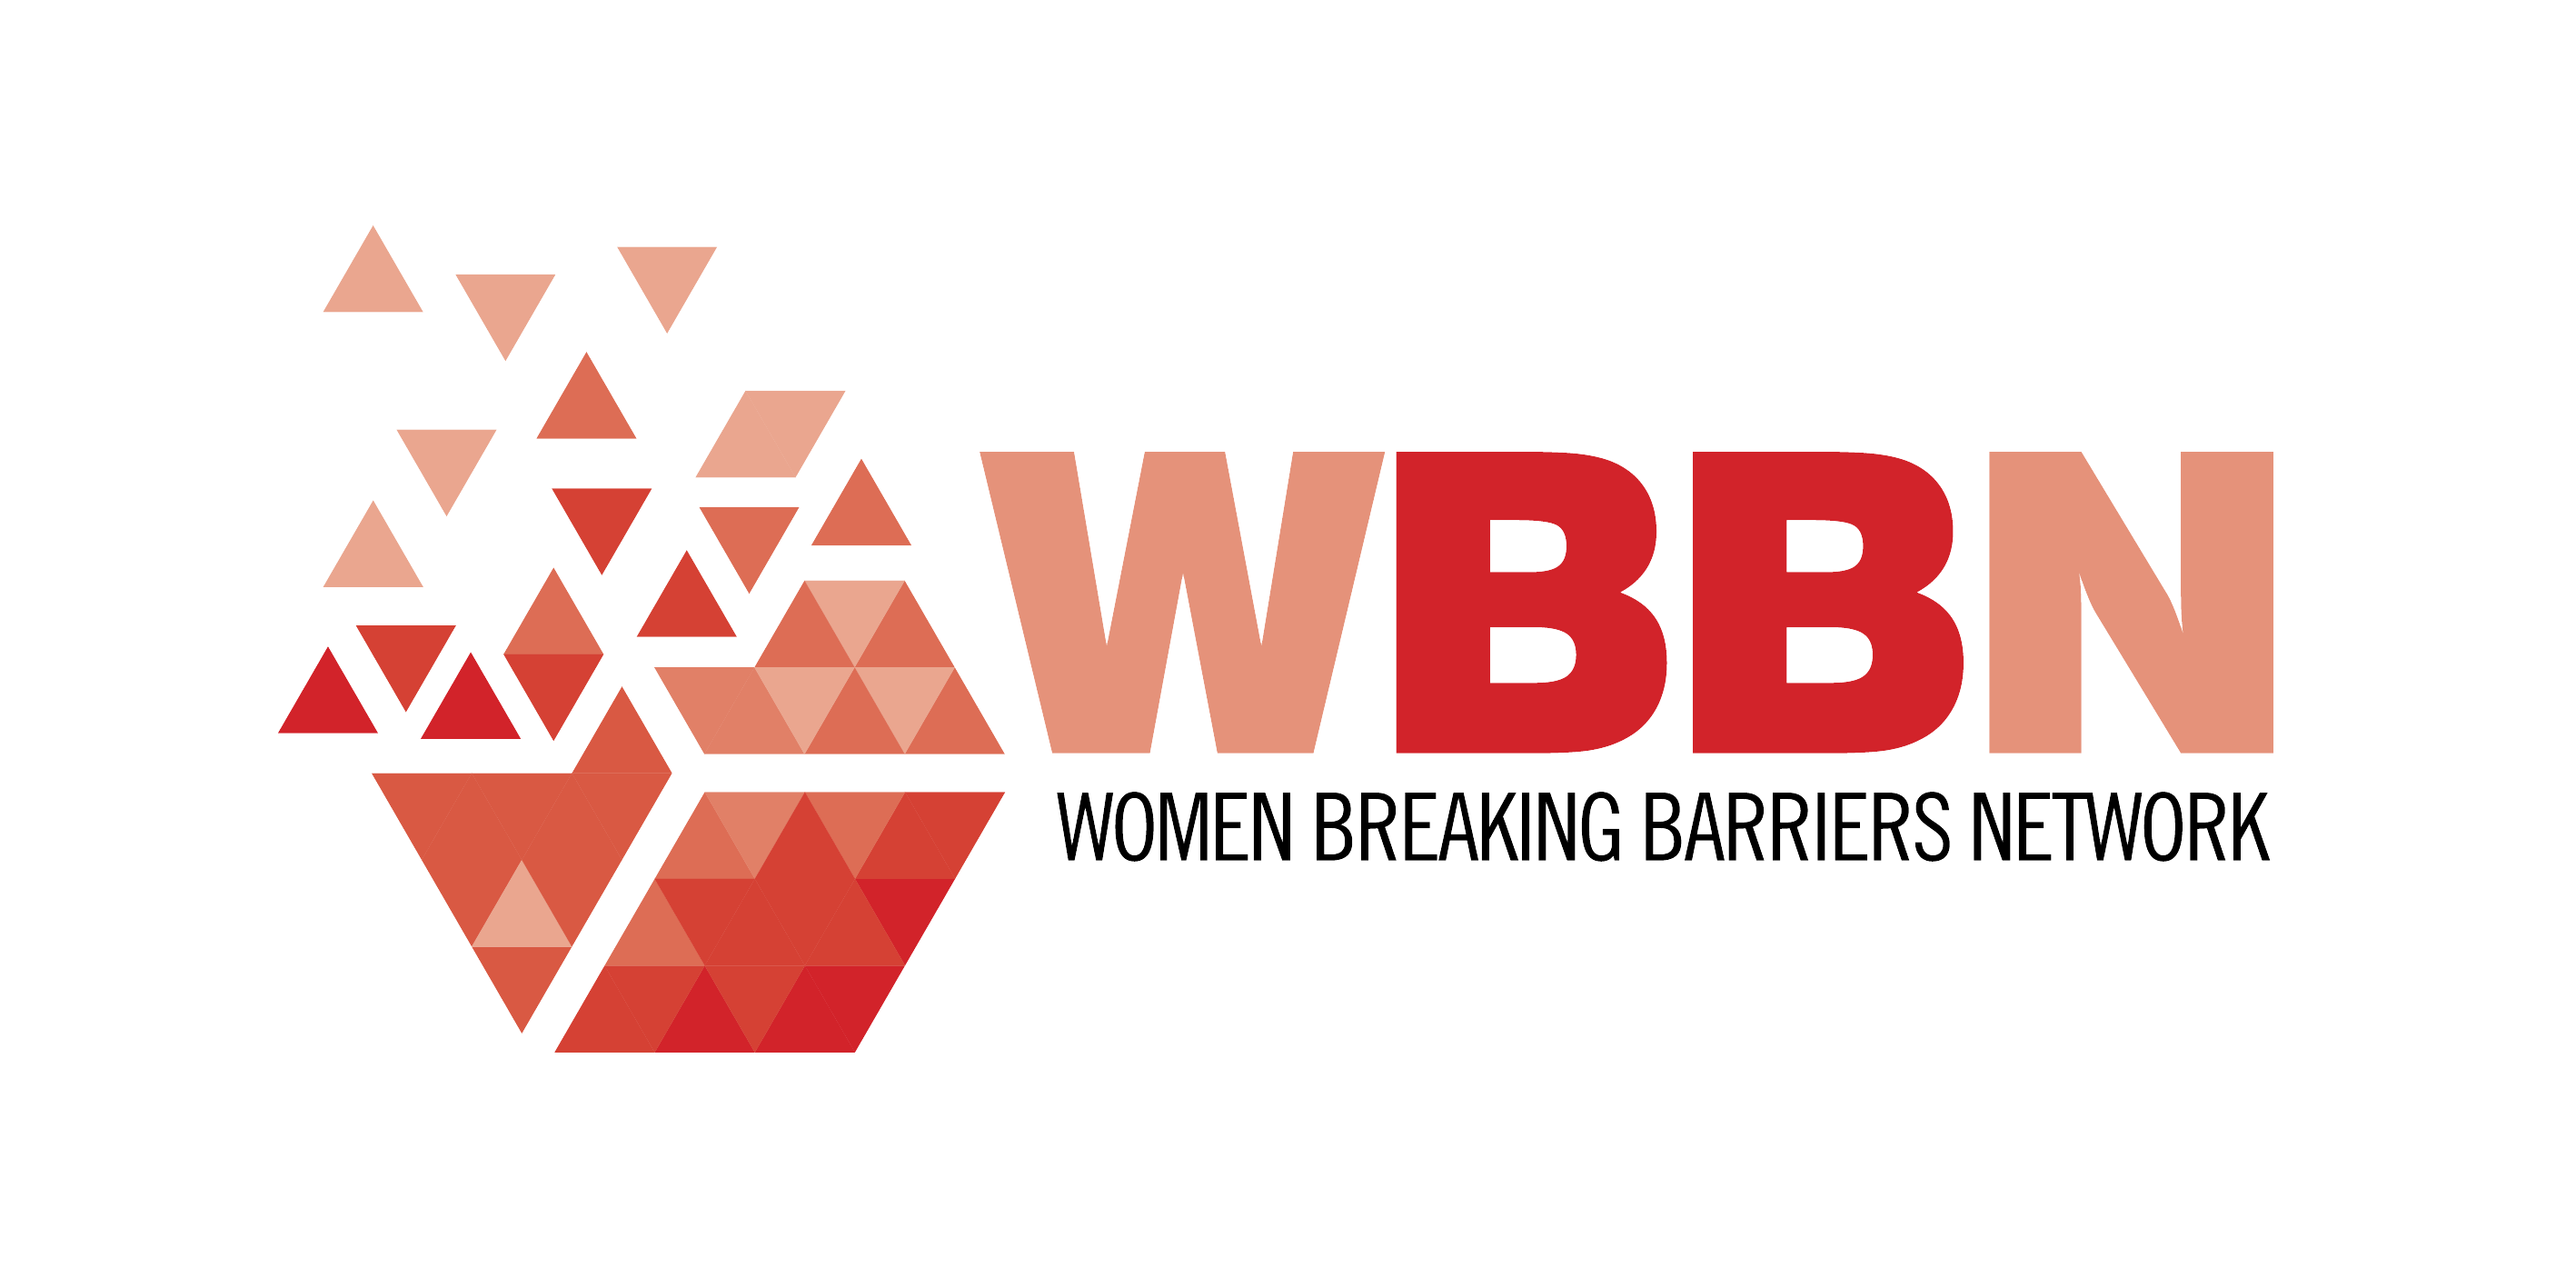 Women Breaking Barriers' 2020/21 President, Imogen Haywood, discusses the highlights of their year